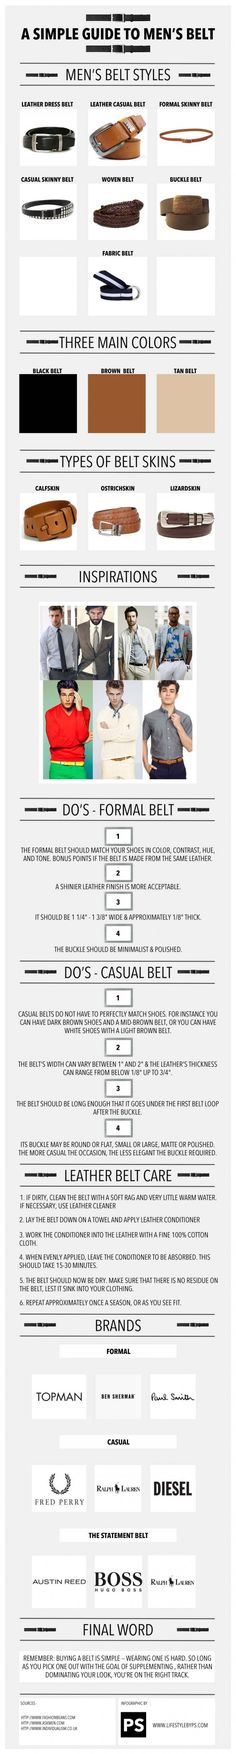 Simple GUIDE to Picking MEN's Belts: When it comes to pulling an outfit together it's all about the details. A great belt can make or break a look. Check out this handy guide to men's belts 👍💋😘😍😄 Sharp Dressed Man, Well Dressed Men, Look 2015, La Mode Masculine, My Sun And Stars, Every Man, Men's Wardrobe, Mens Wardrobe Essentials, Men Style Tips